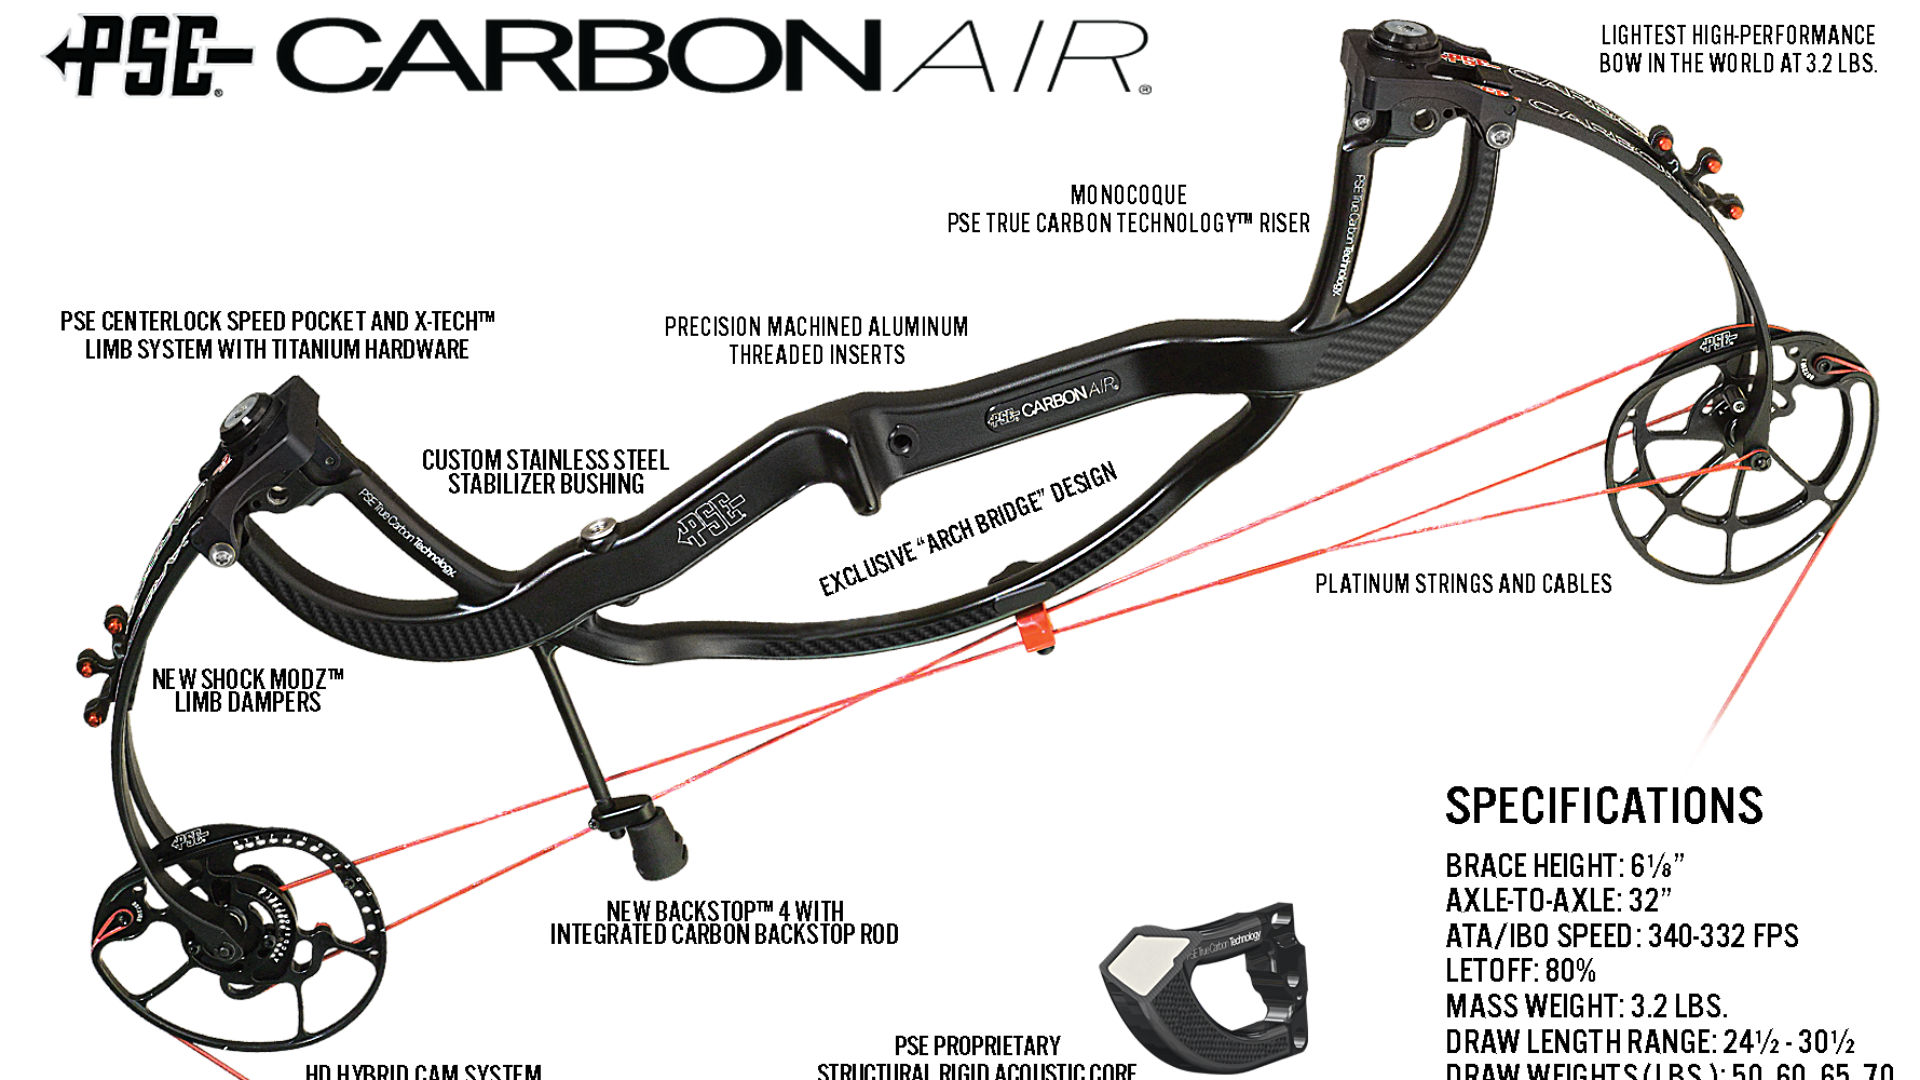 PSE releasing new, lightweight Carbon Air compound bow